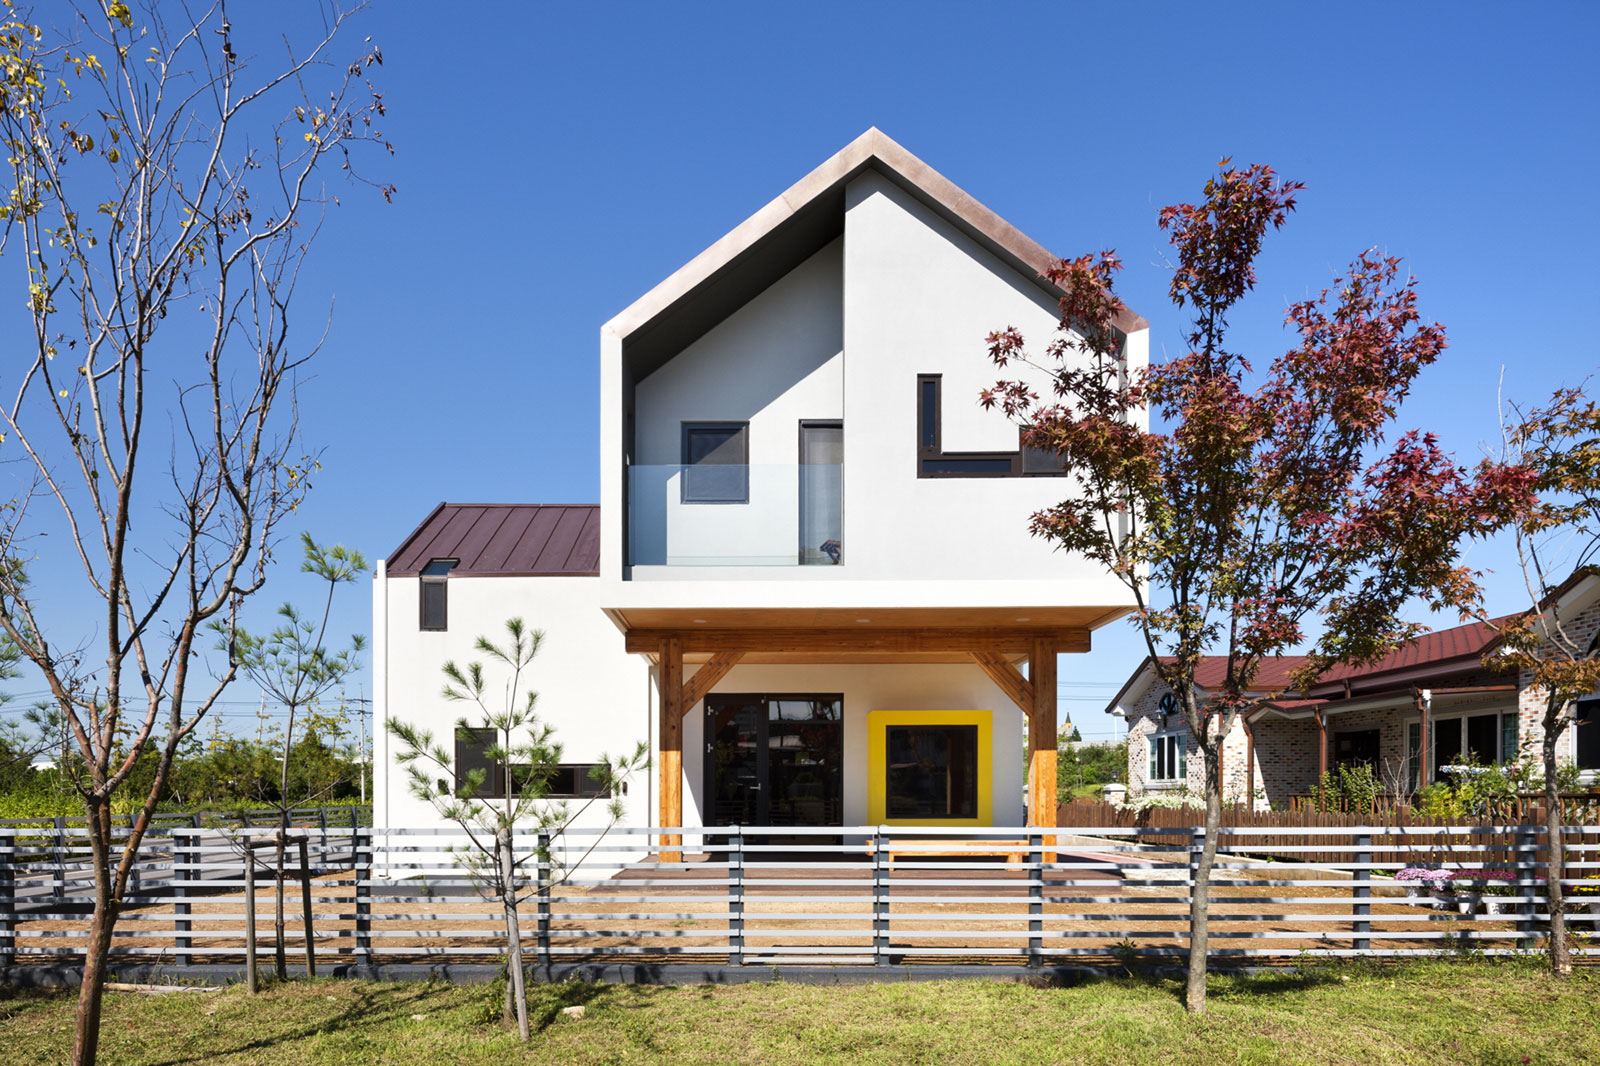 Iksan t shaped house in south korea by kddh architects for Houses in south korea